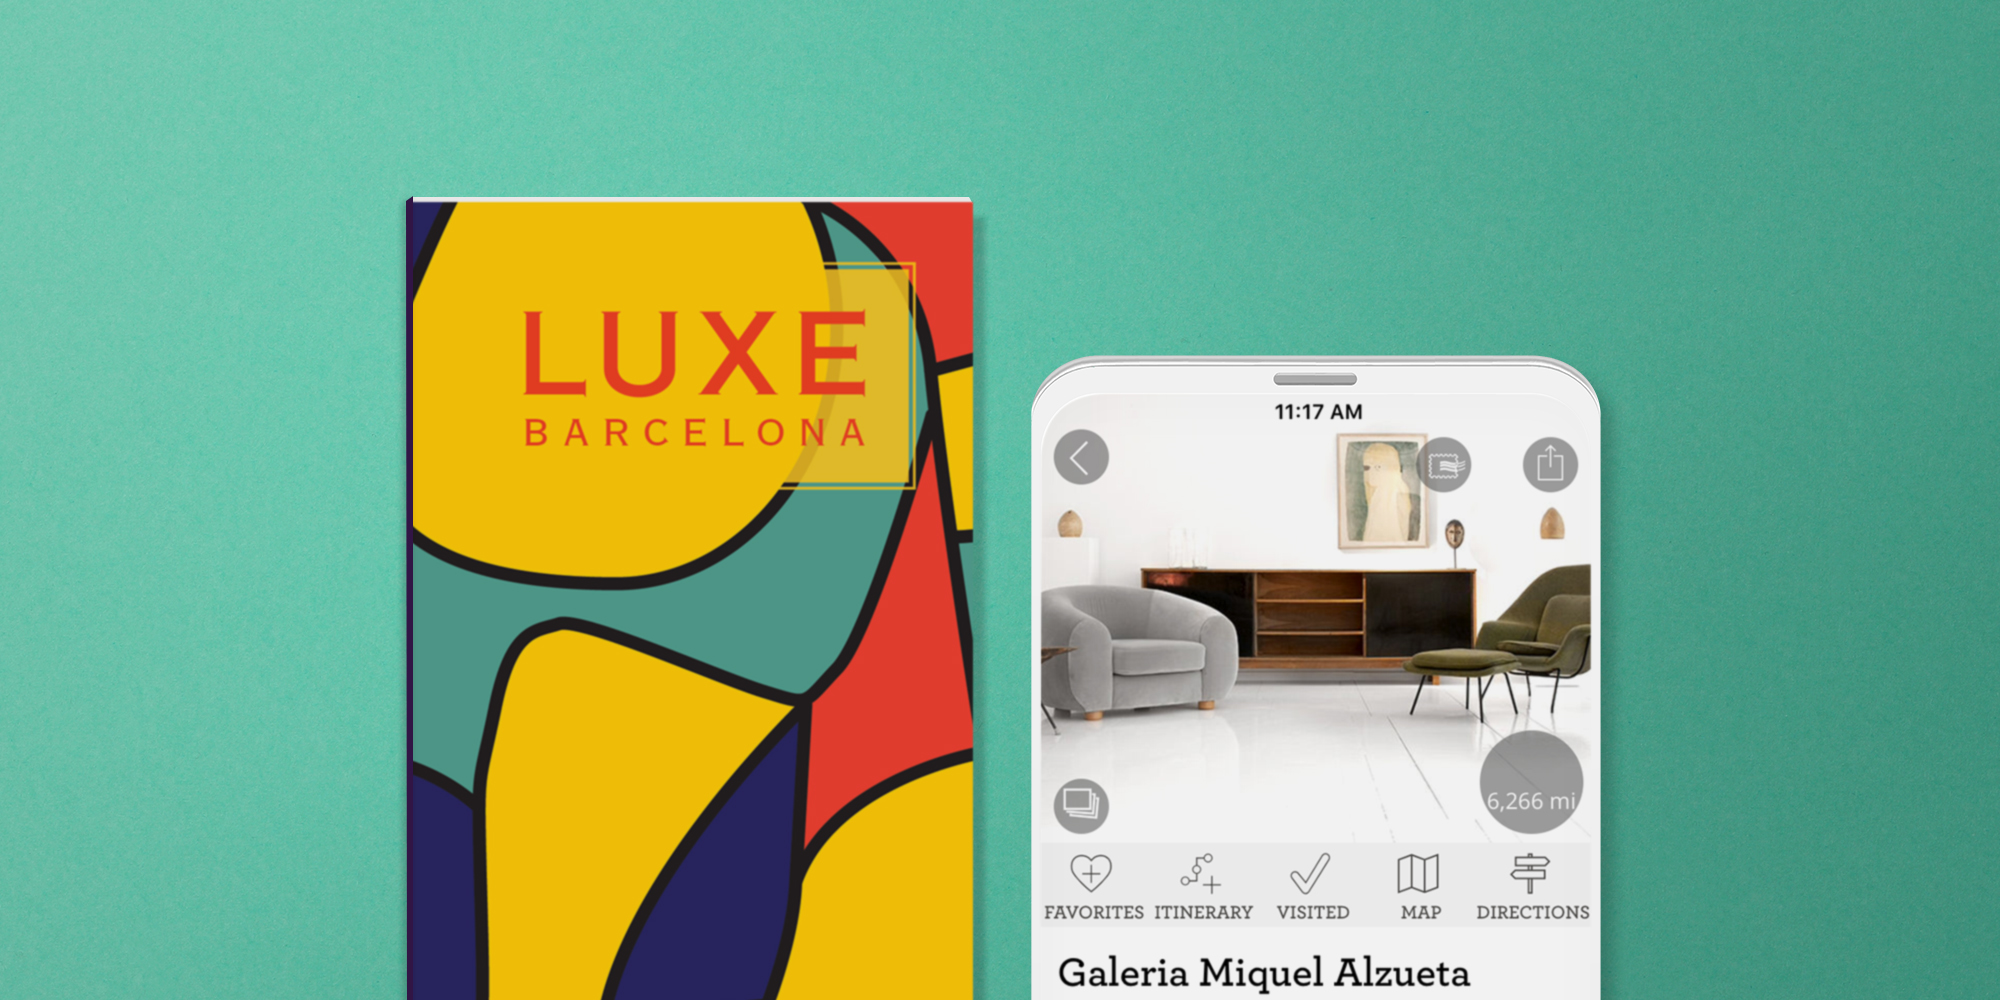 Barcelona print guide and digital guide